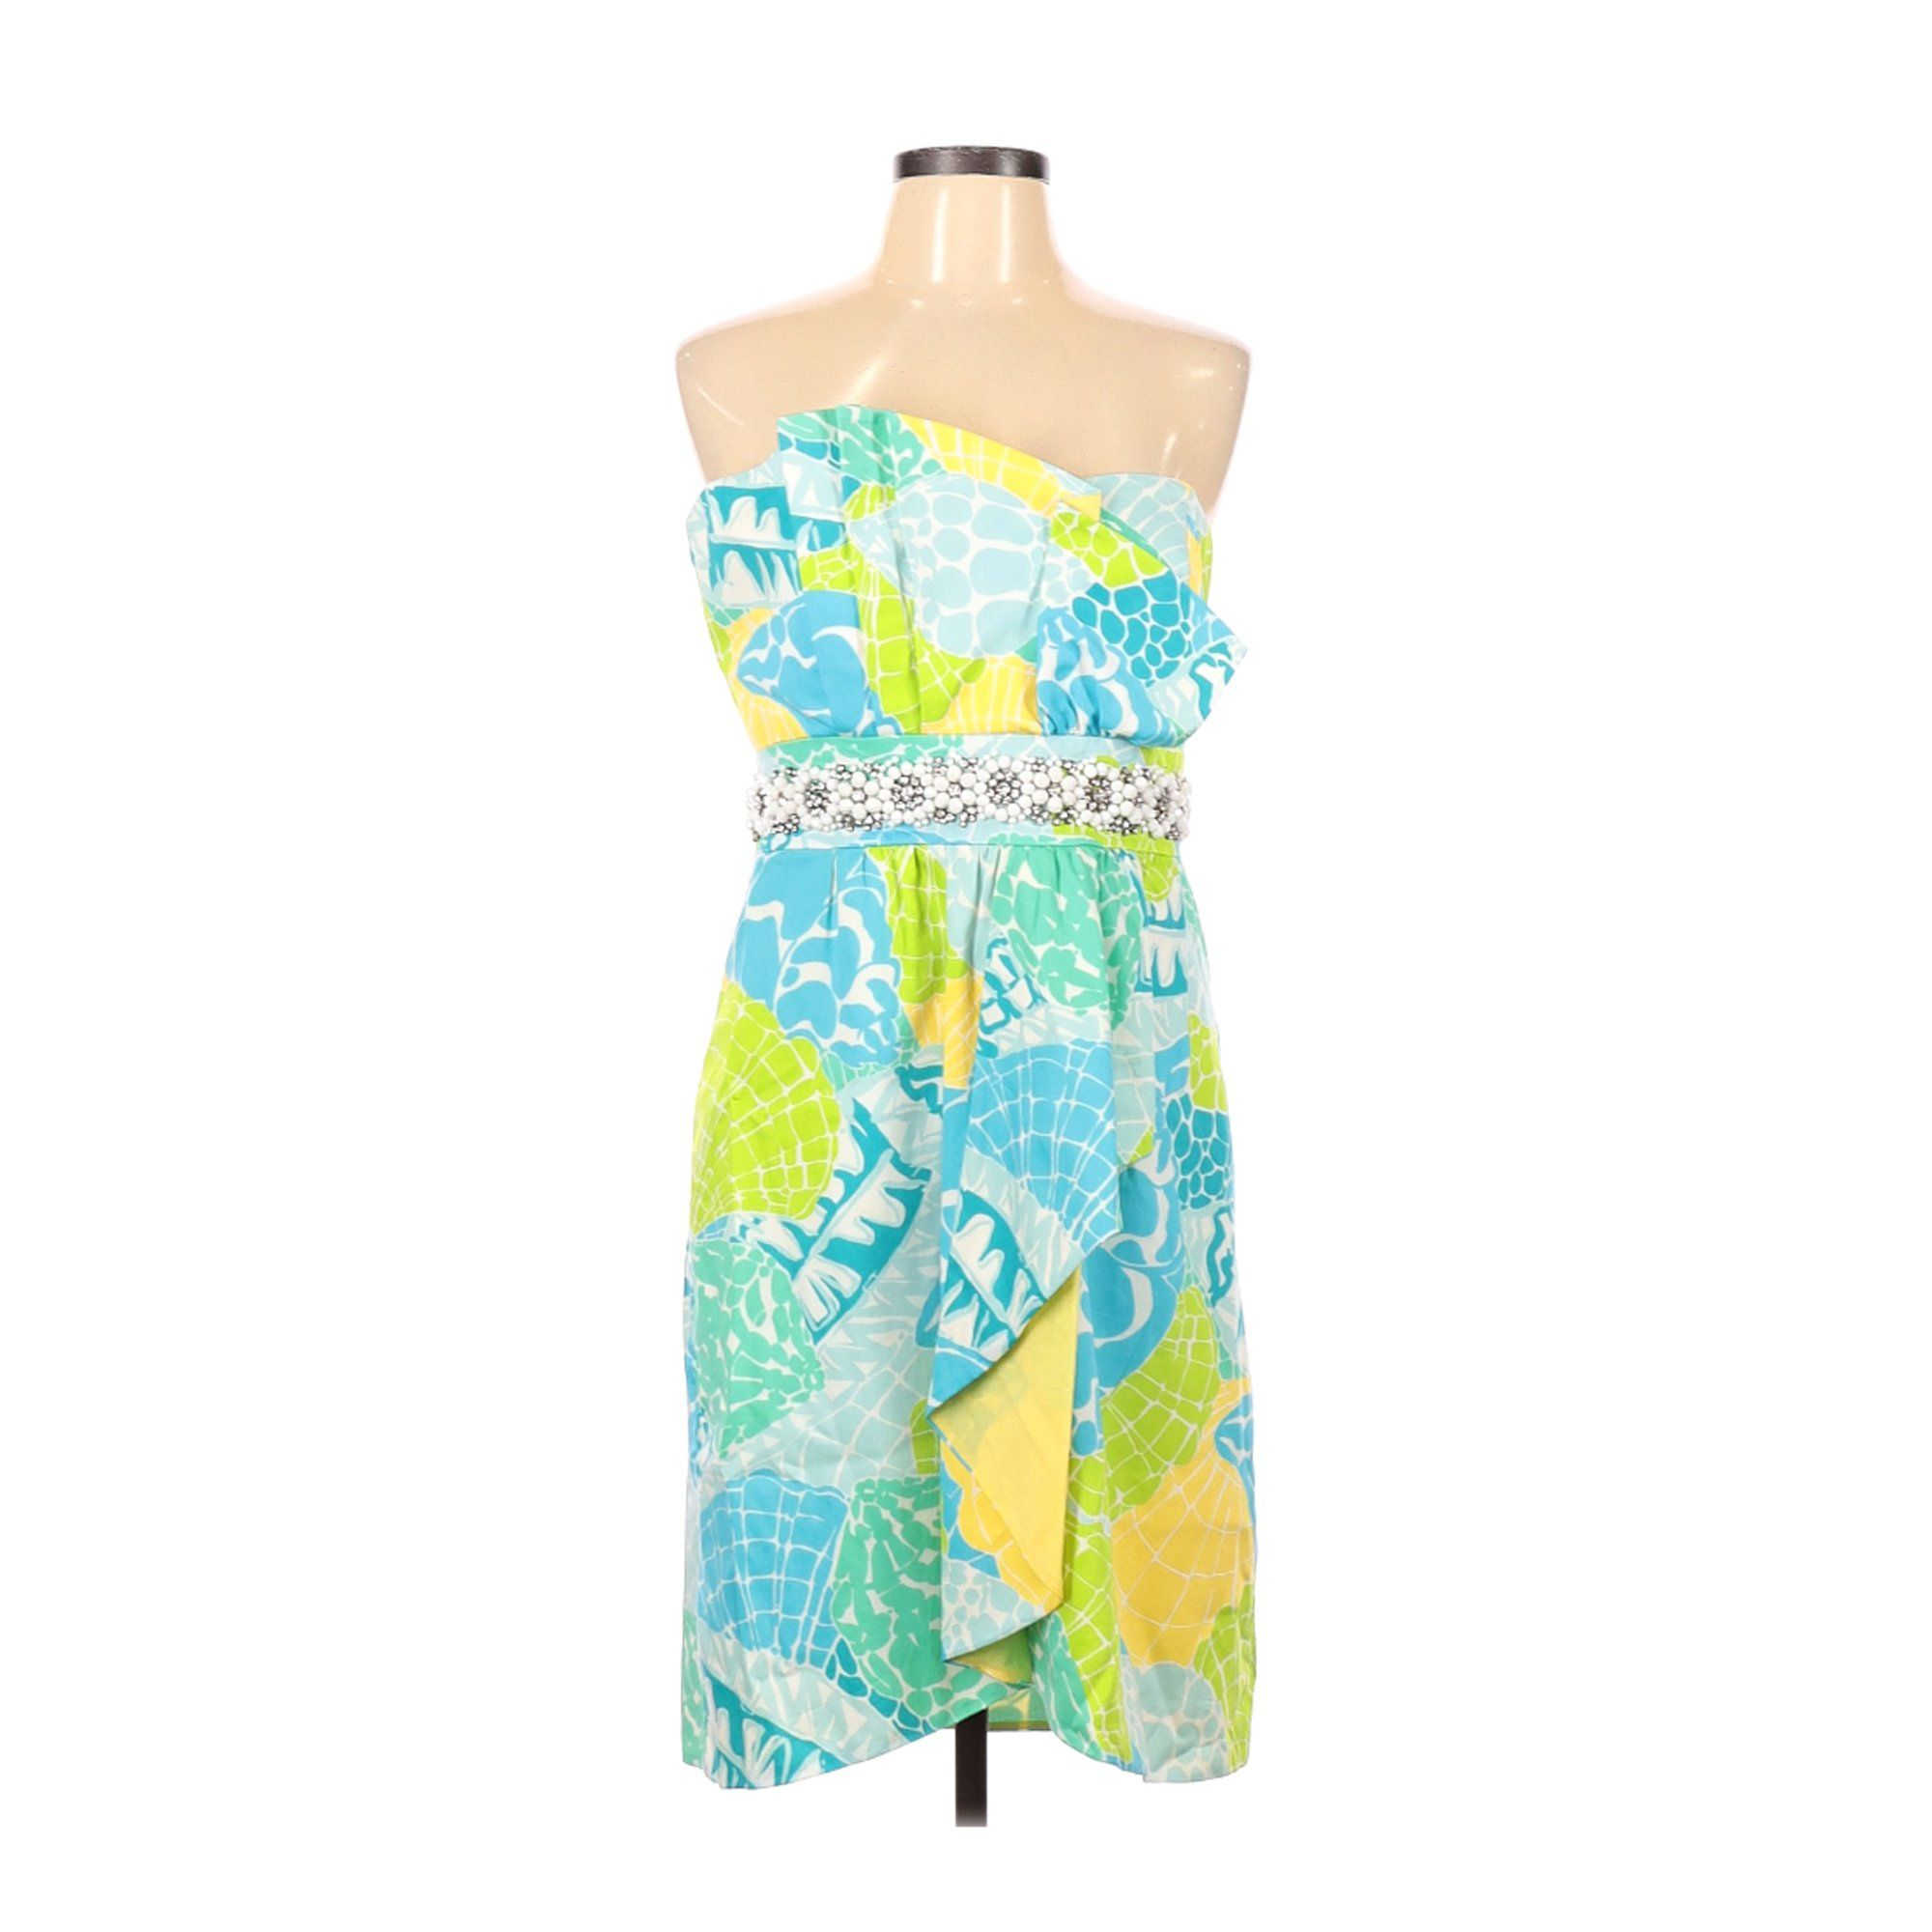 Lilly Pulitzer Pre Owned Lilly Pulitzer Women S Size 12 Cocktail Dress Walmart Com Walmart Com In 2021 Dresses Cocktail Dress Yellow Dress [ 2000 x 2000 Pixel ]